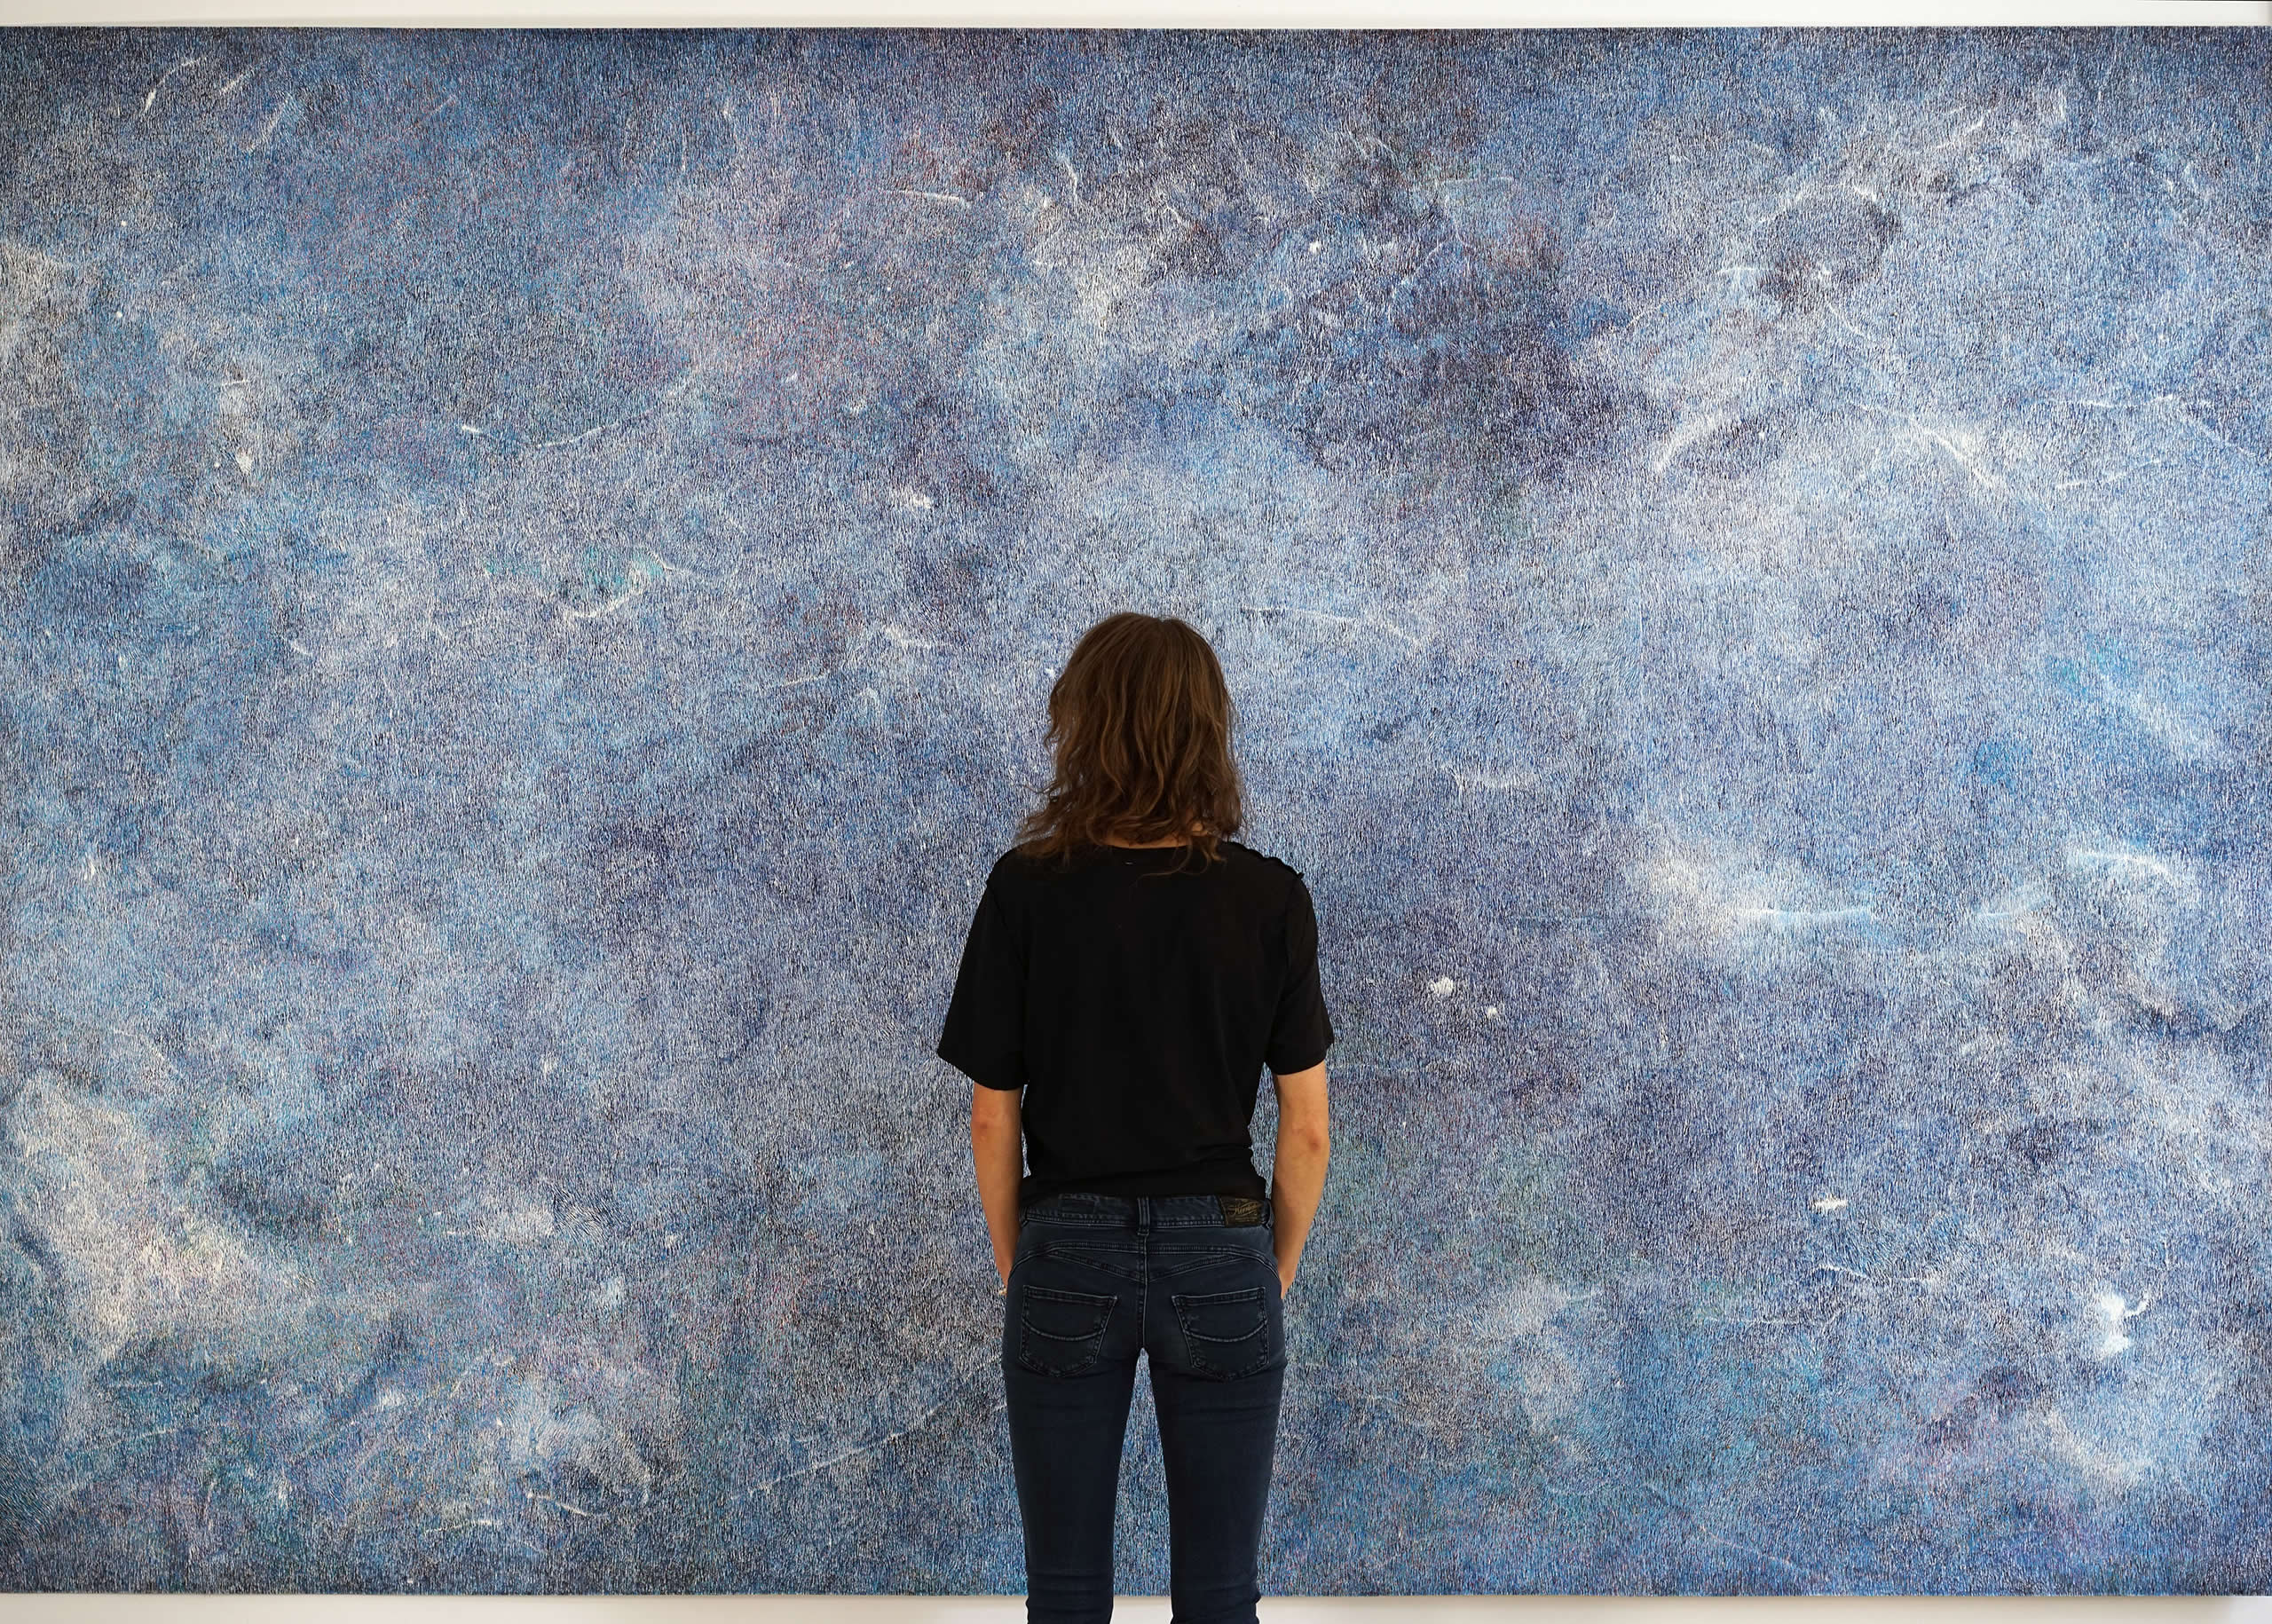 Linda Berger | The mountain never moves | Tusche auf Papier | 2019 | 320 x 220 cm | Galerie3